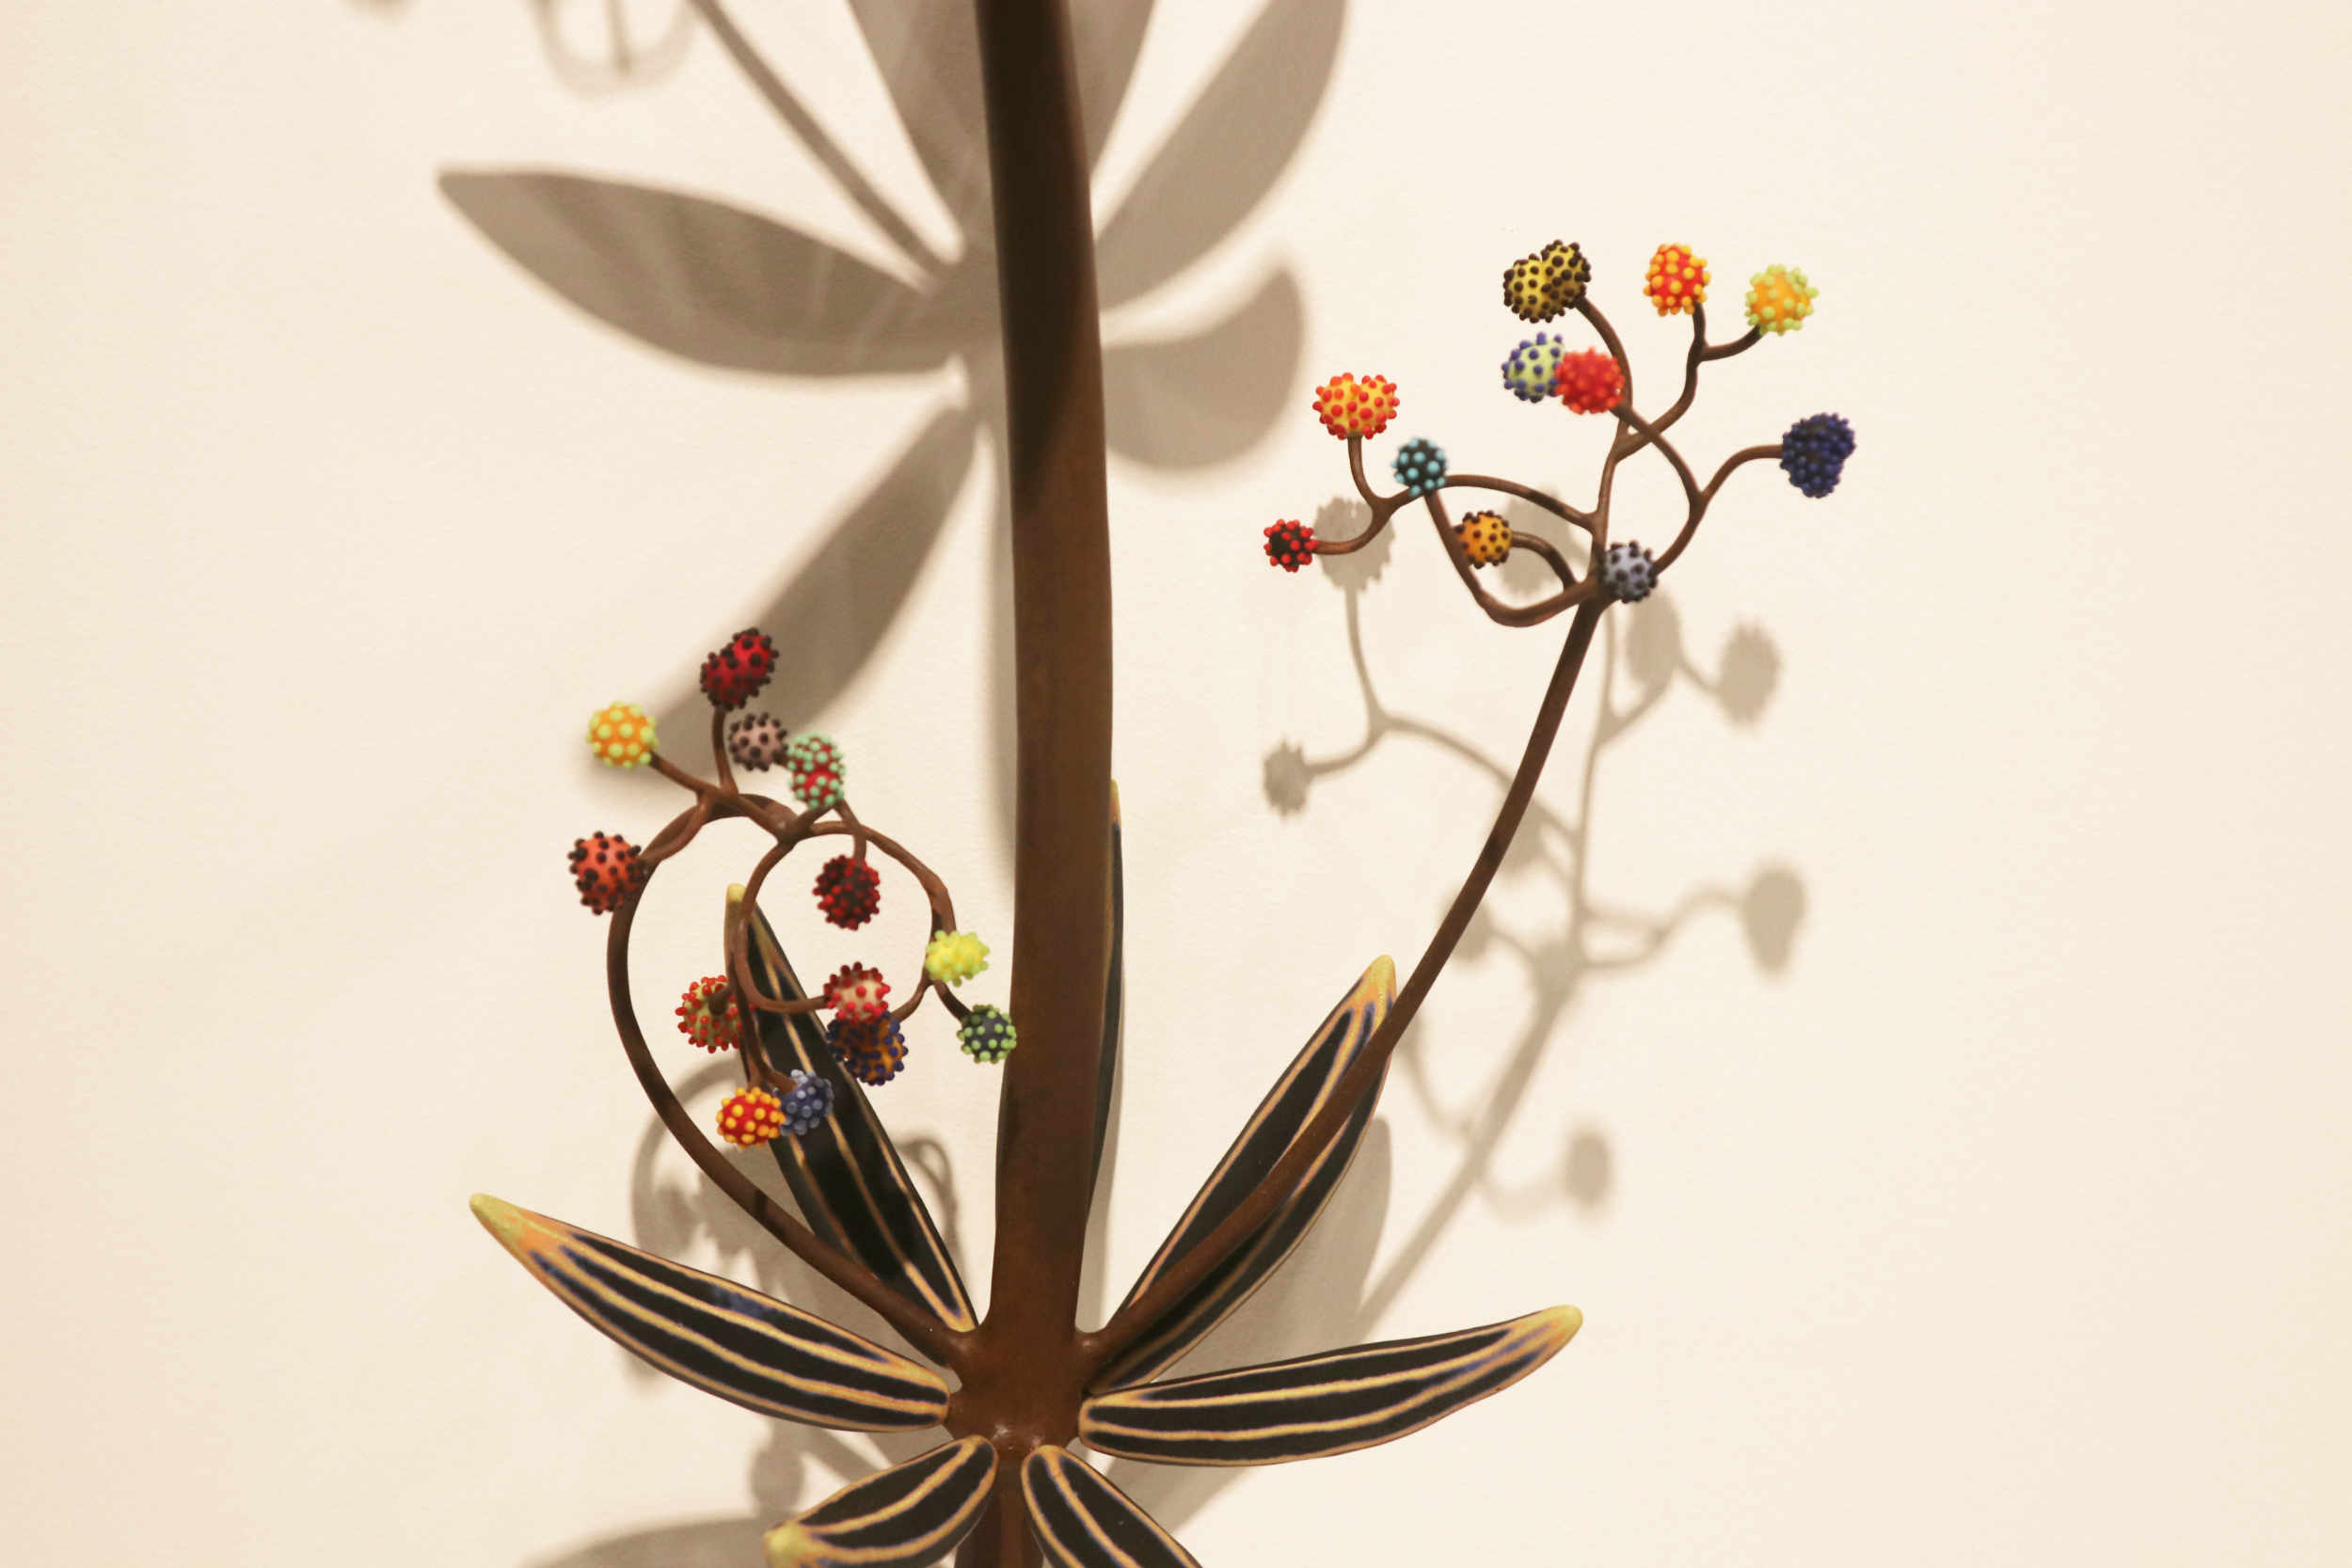 Michael Sherrill, How Plants Travel (detail), 2003. Porcelain, steel, glass.